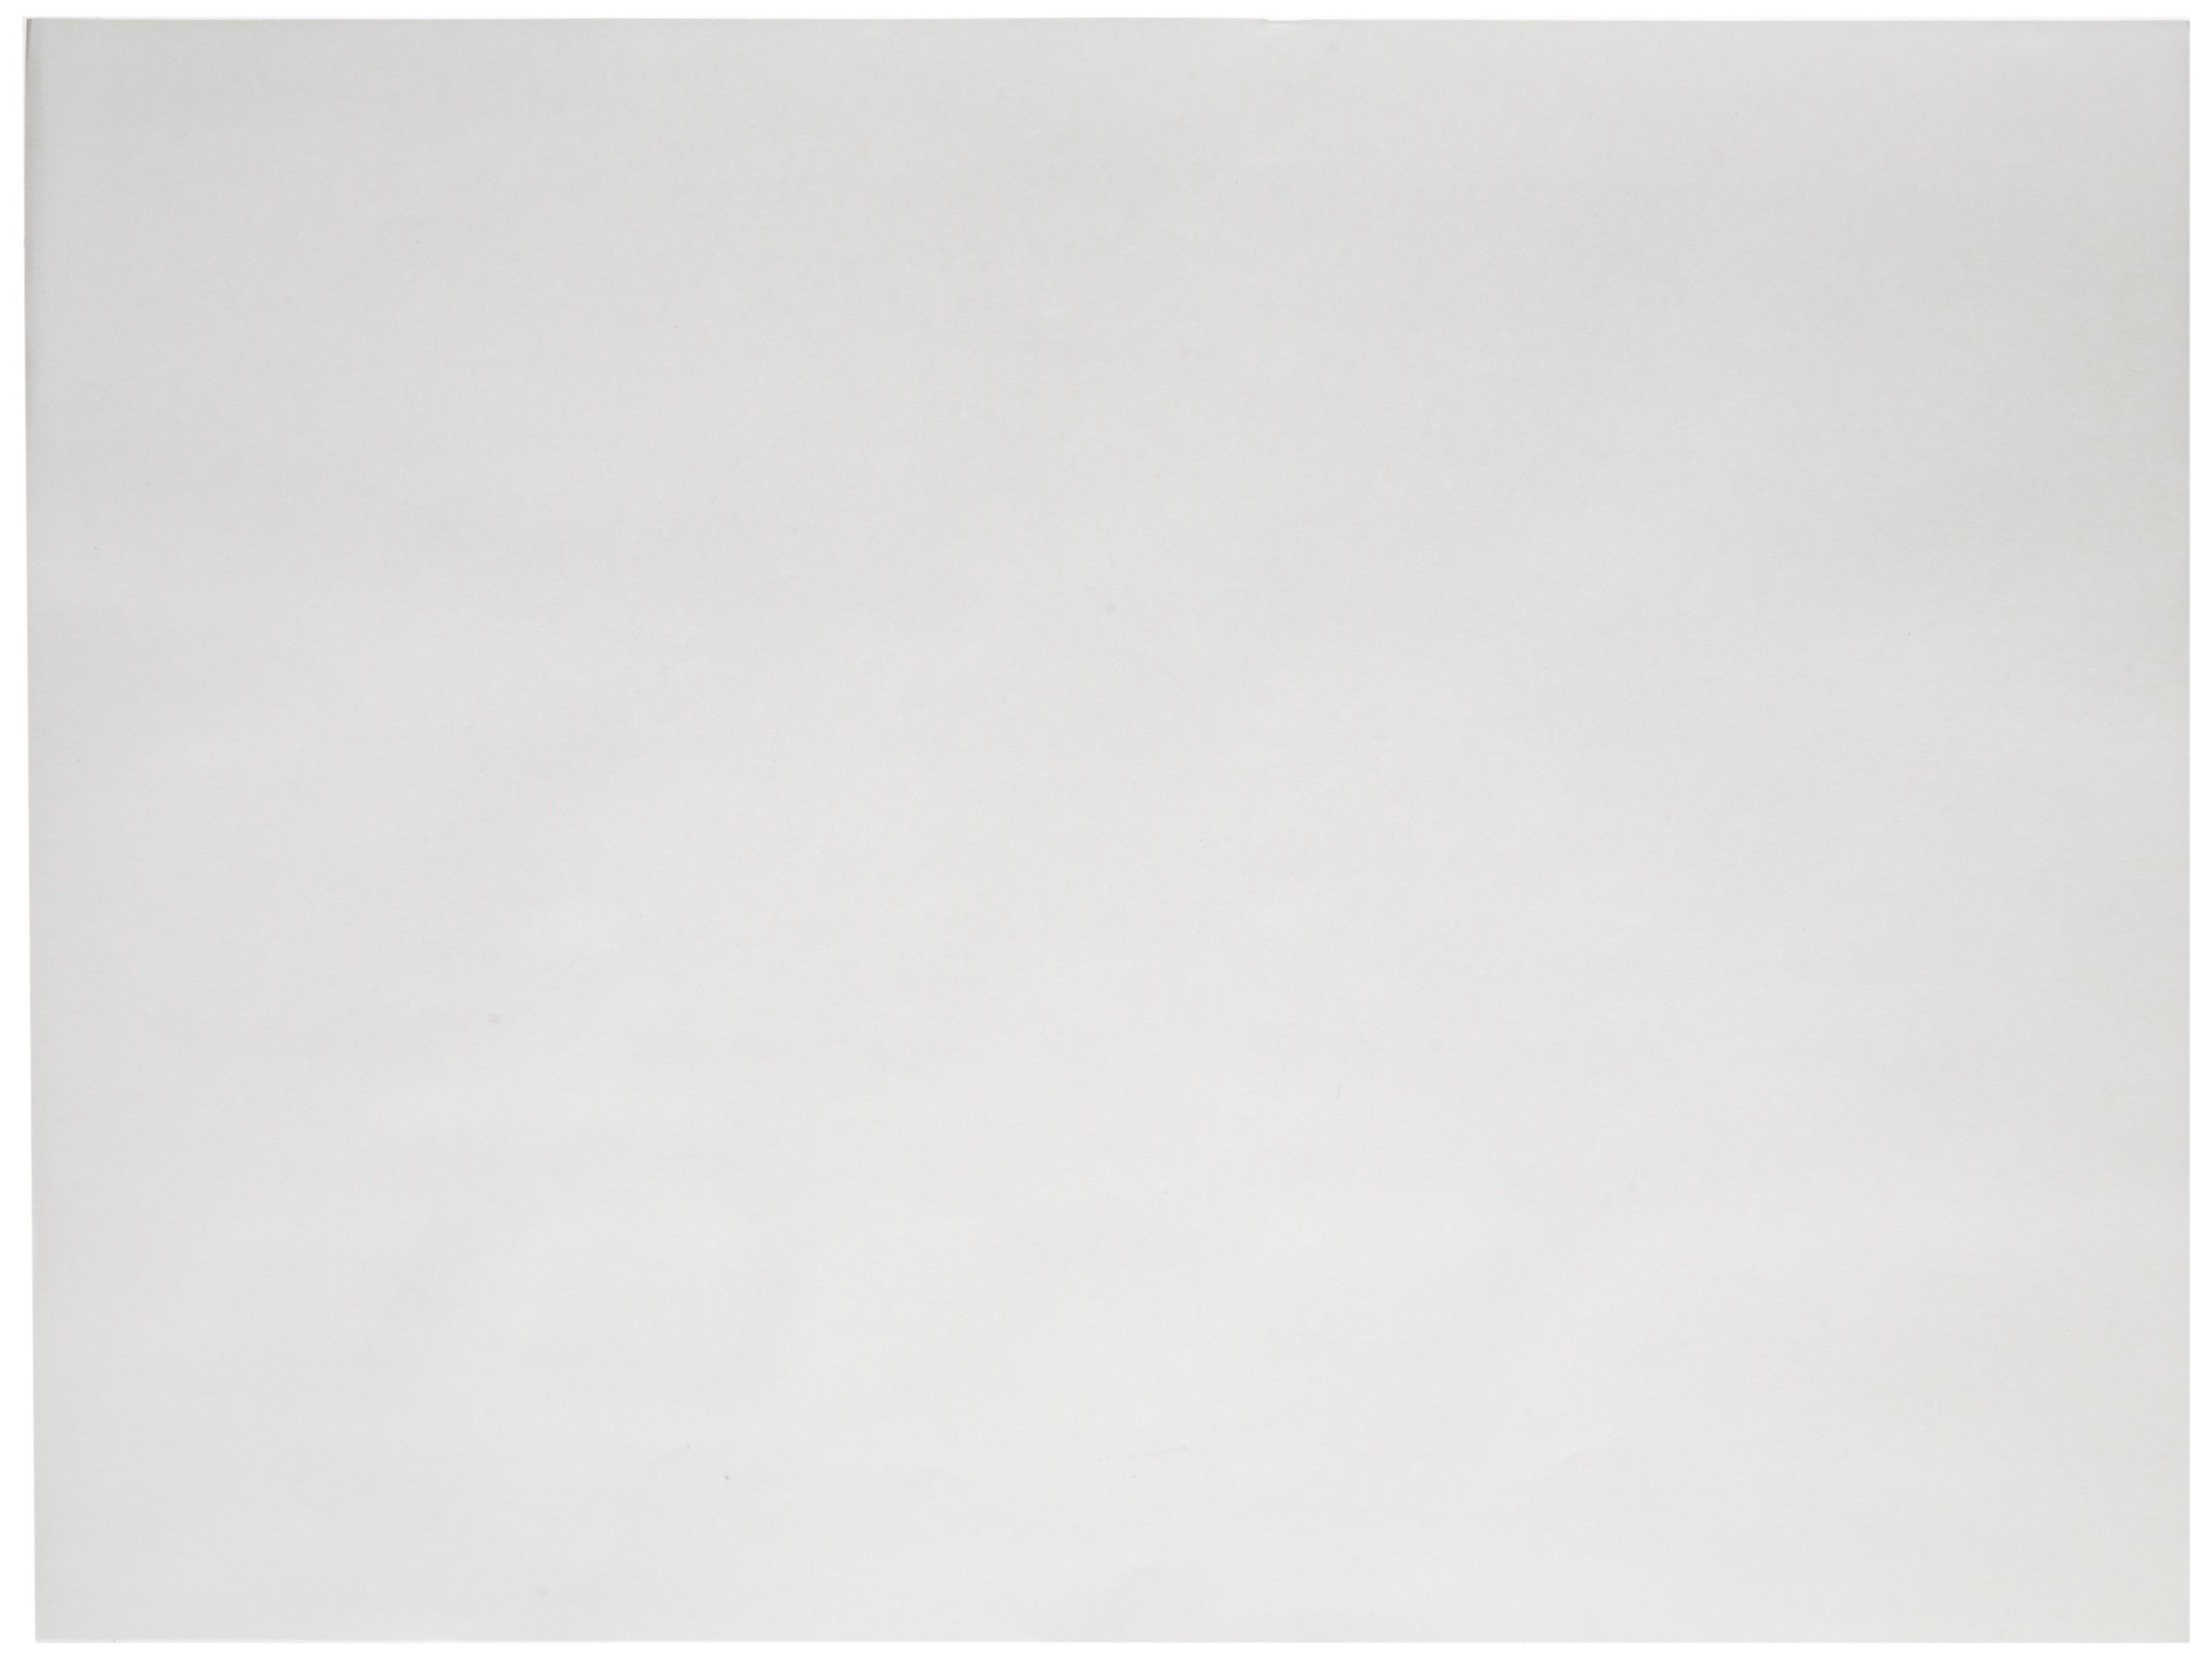 Sax Sulphite Drawing Paper, 70 lb, 18 x 24 Inches, Extra-White, Pack of 500